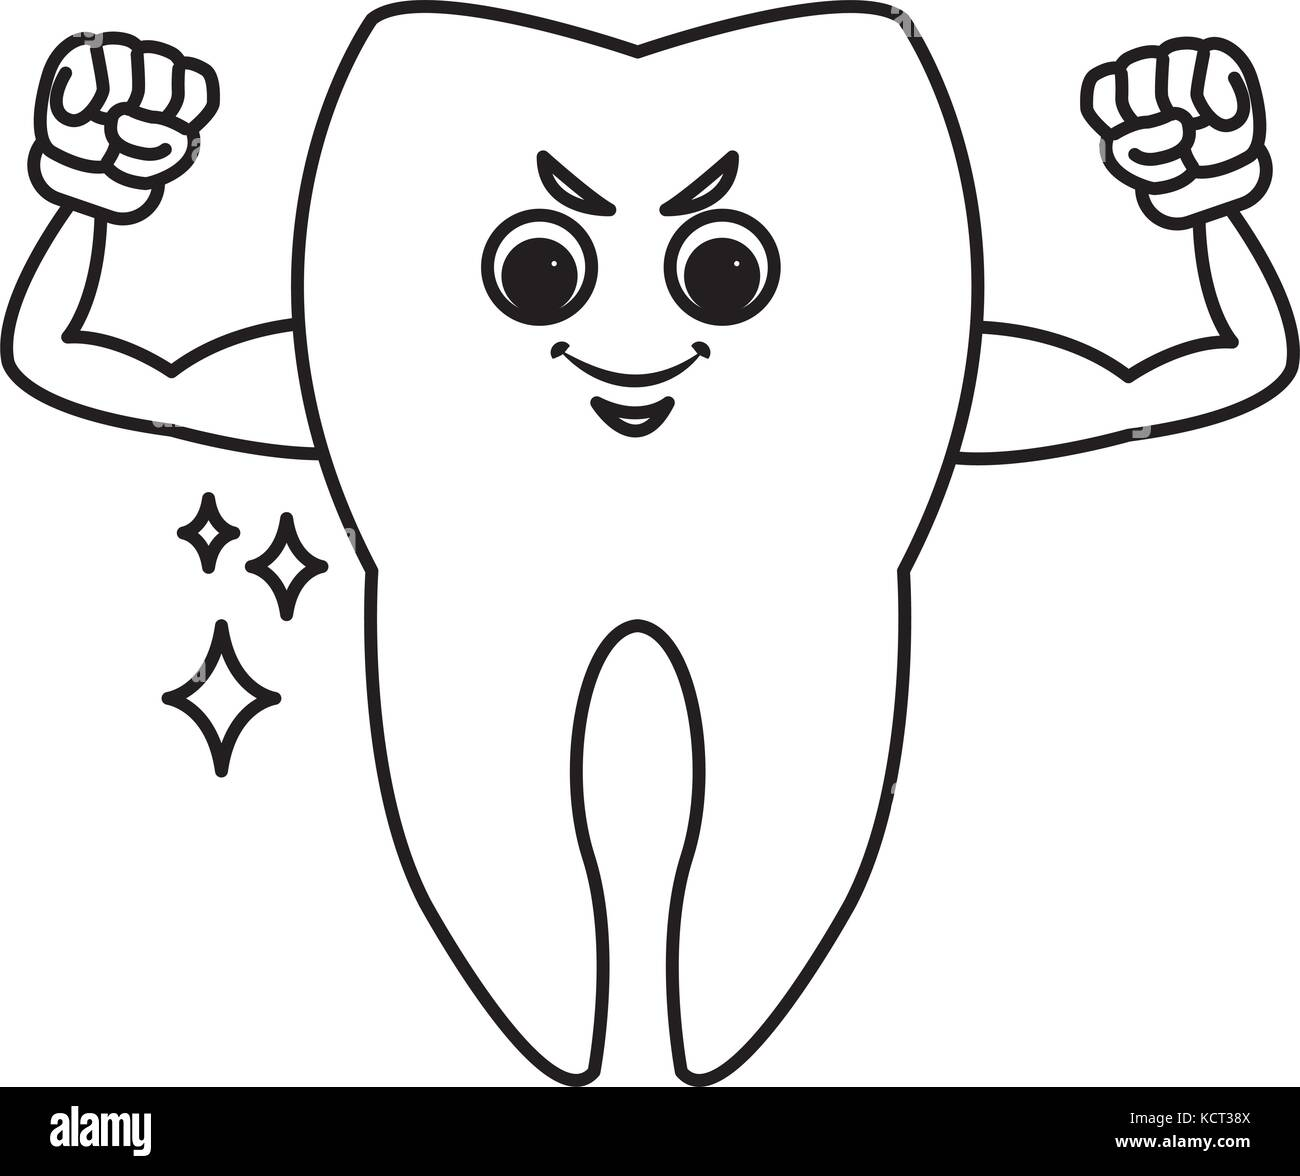 Cute Tooth Cartoon Stock Vector Image Art Alamy